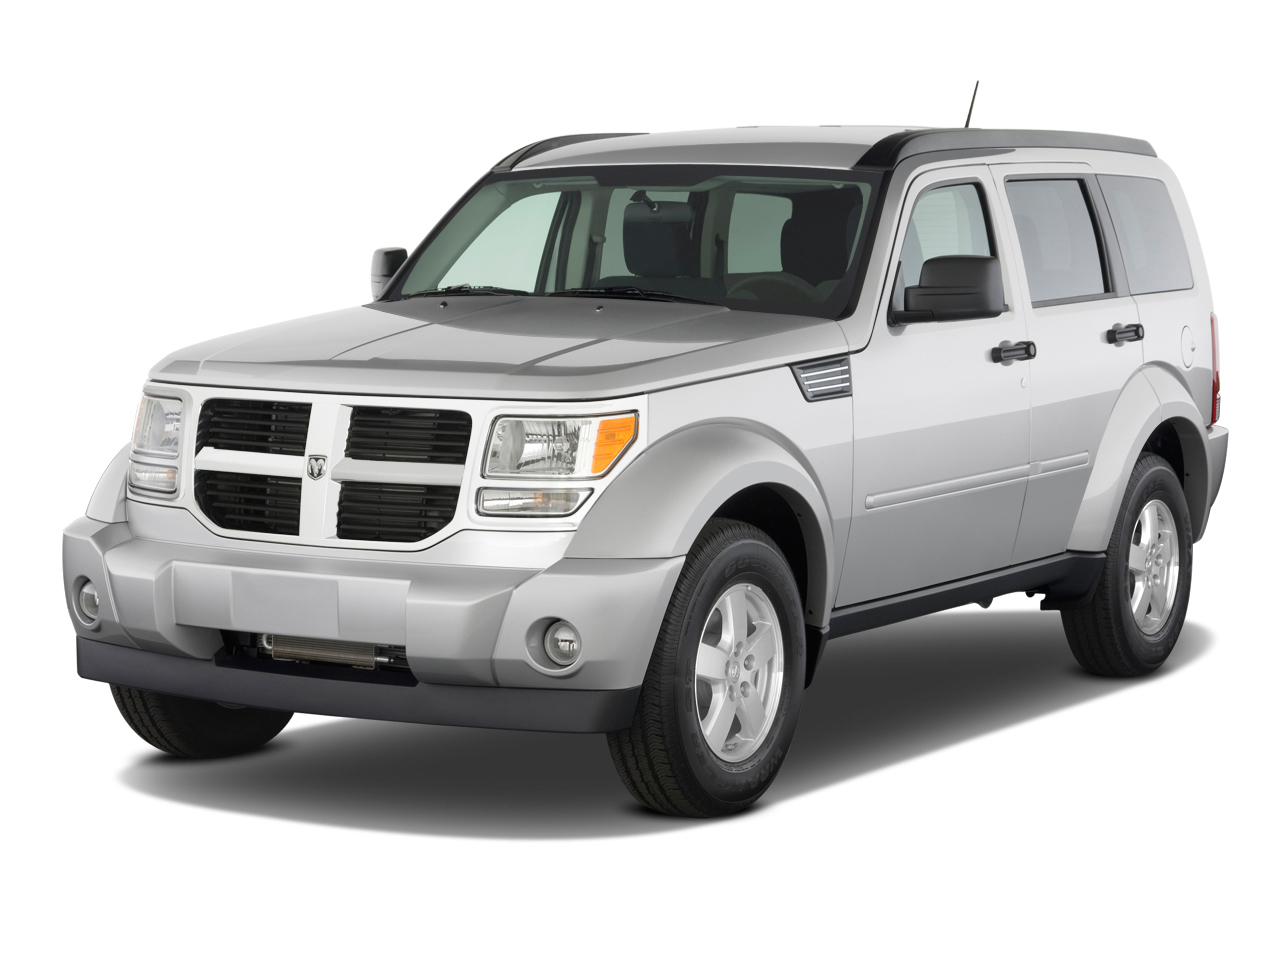 2011 Dodge Nitro Review Ratings Specs Prices And